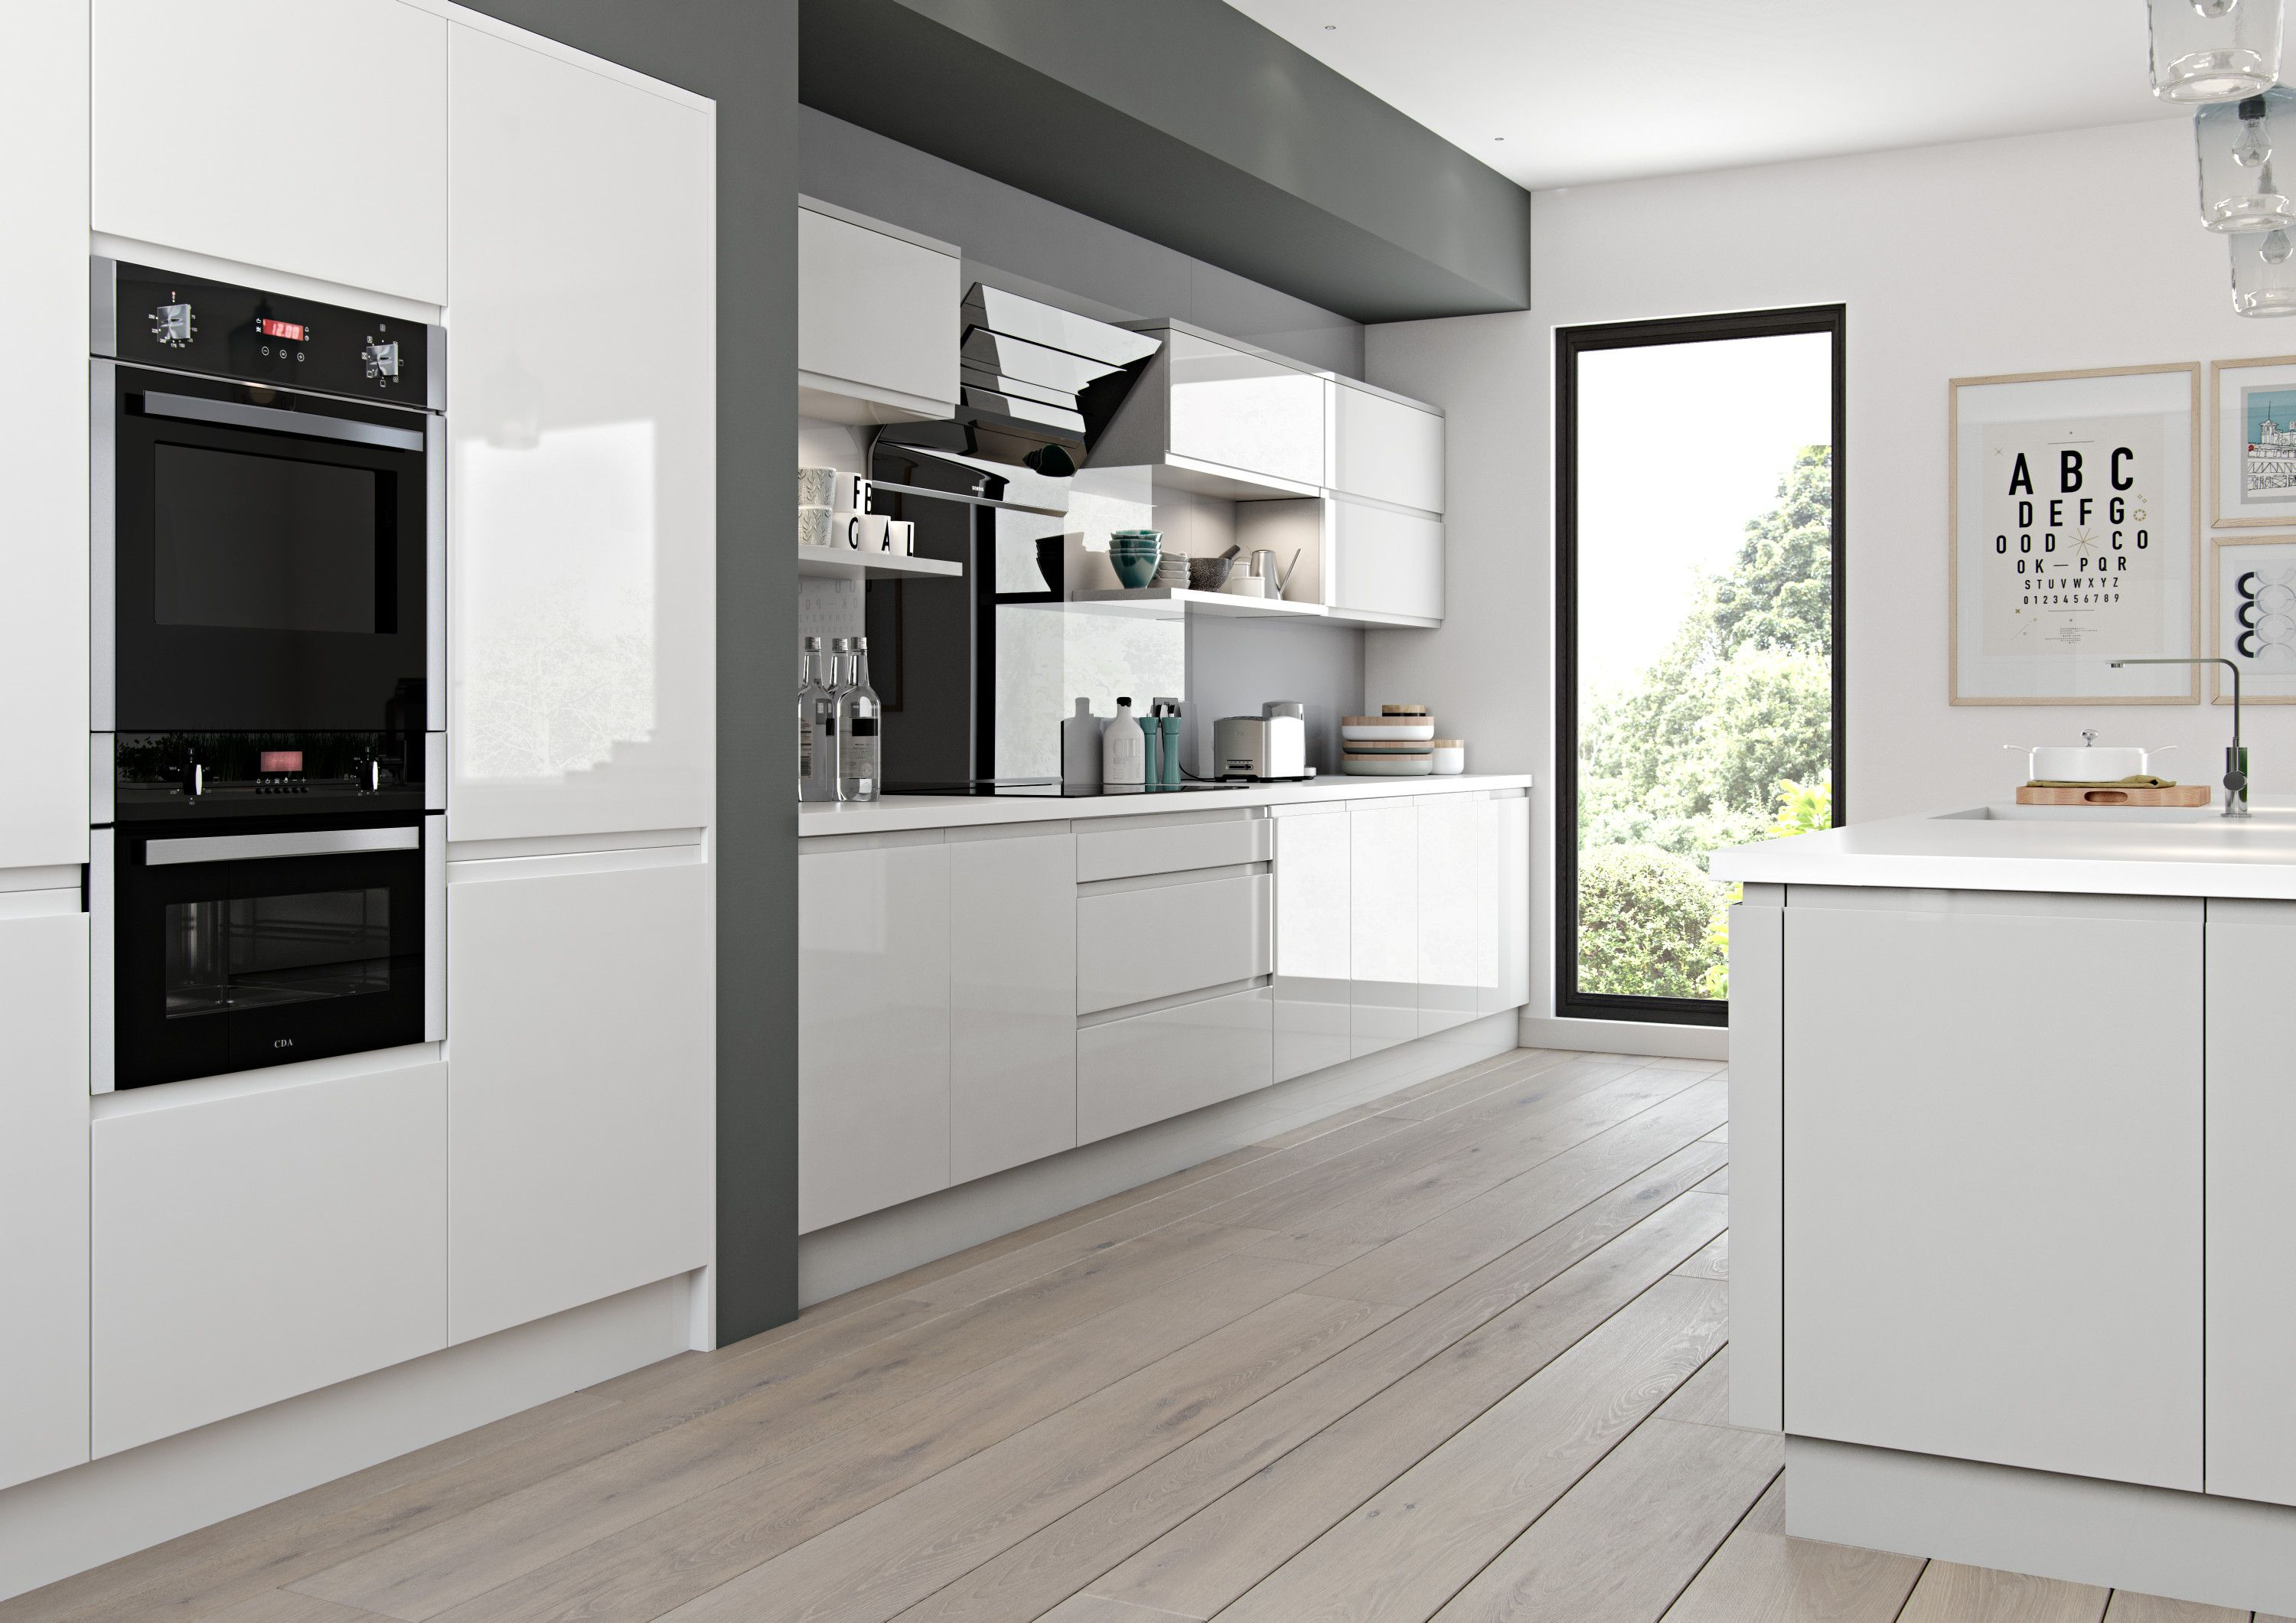 New for 2016 Luzzi Gloss Light Grey and White Painted Kitchen